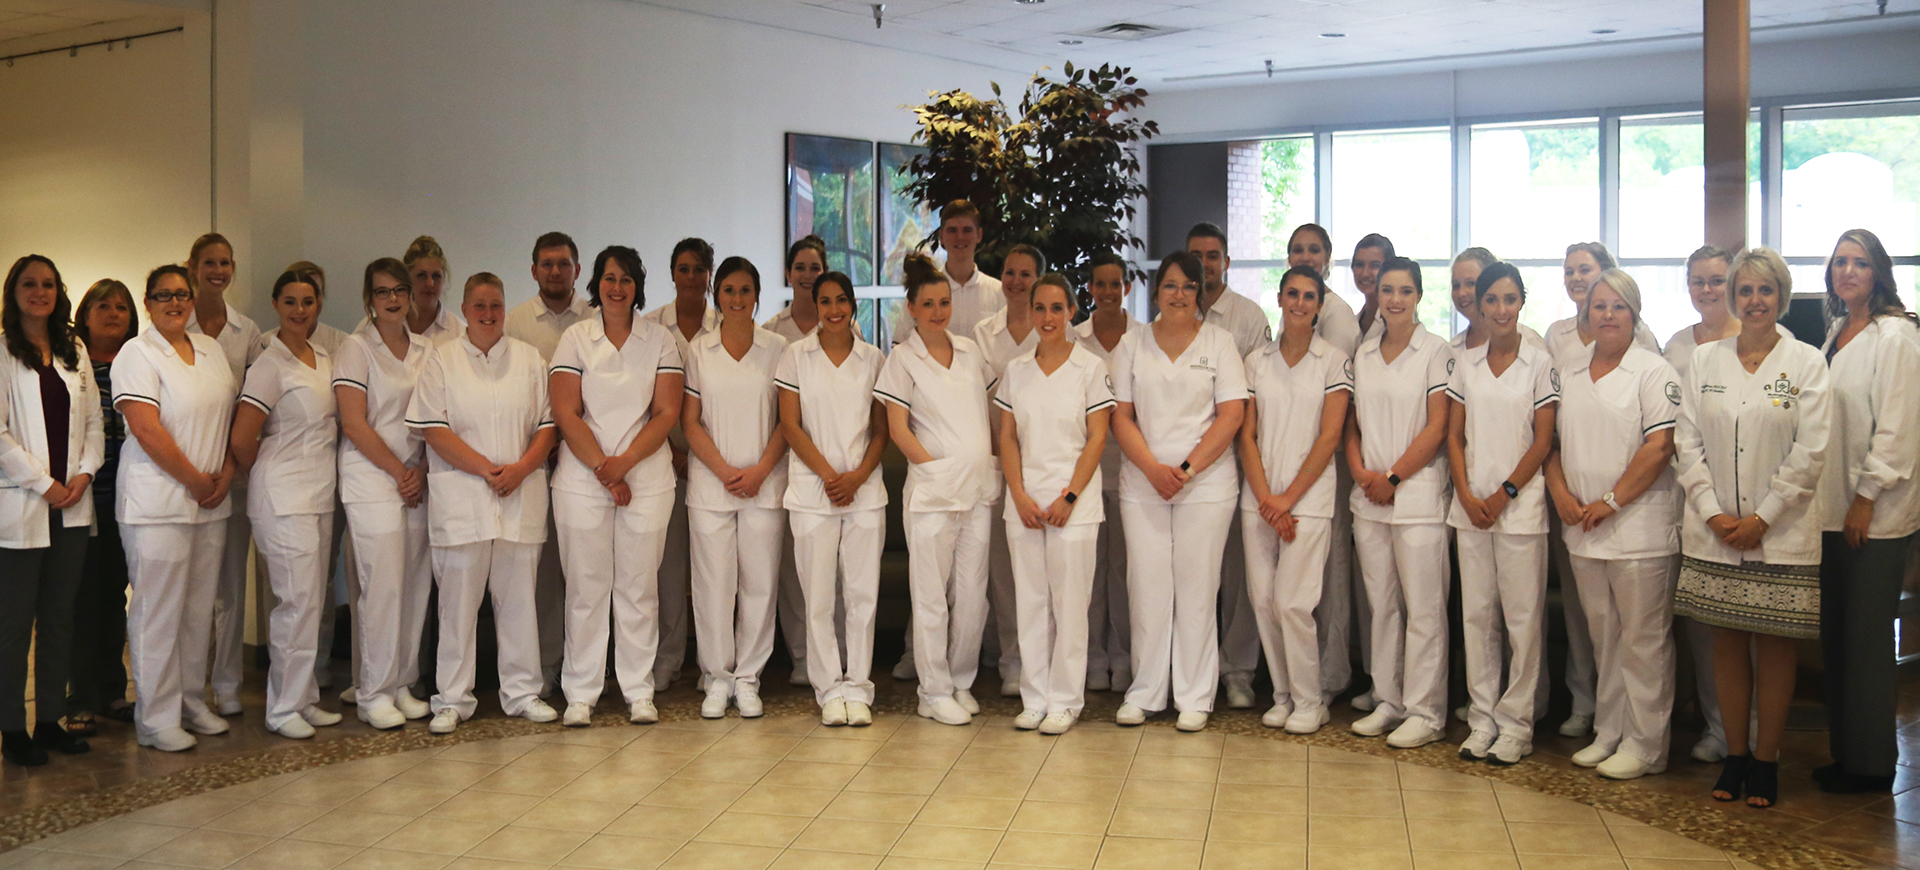 A national nursing advocacy organization has announced the top 20 Practical Nursing (PN) programs in Ohio and for the sixth year in a row, Washington State Community College ranks among the best.